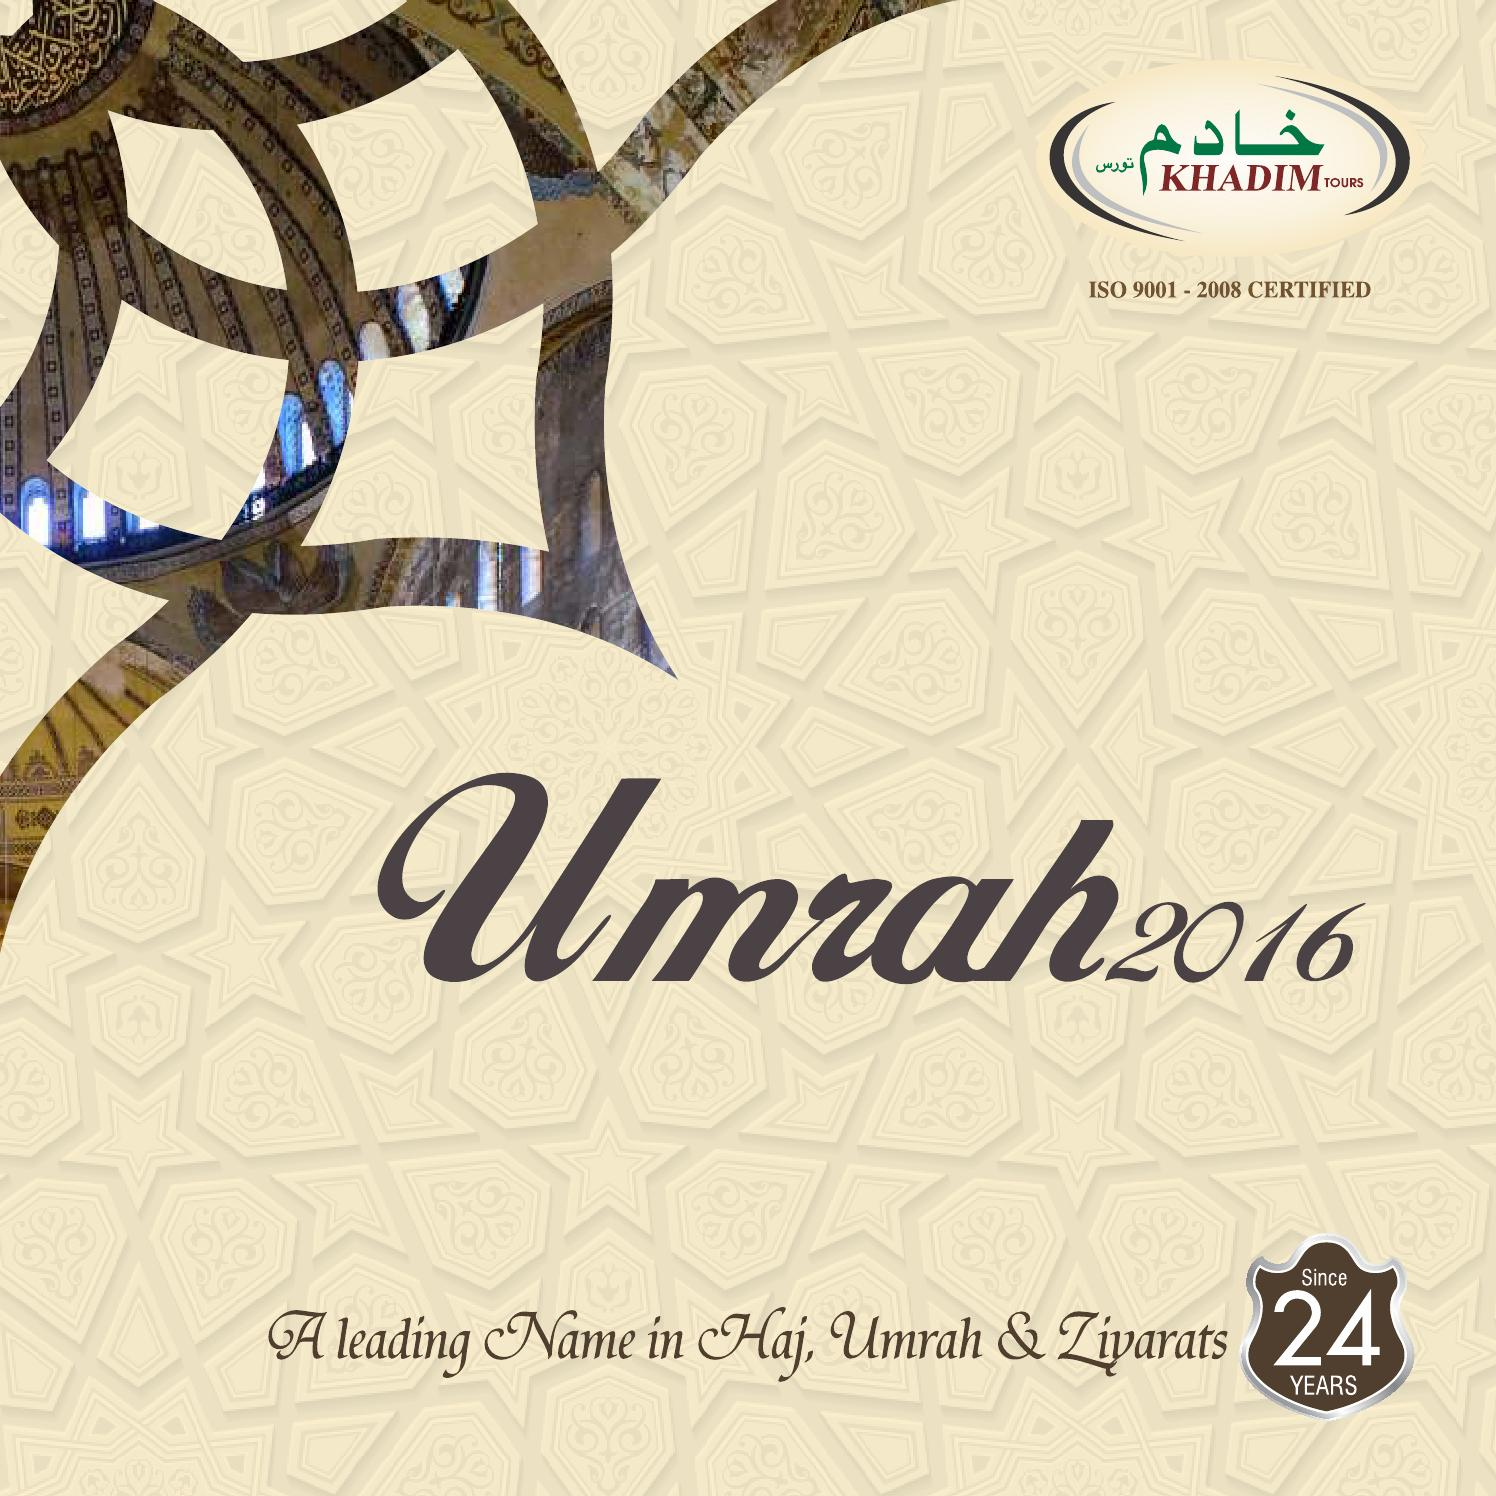 Khadim Tours Umrah Brochure 2016 By Spicetree Design